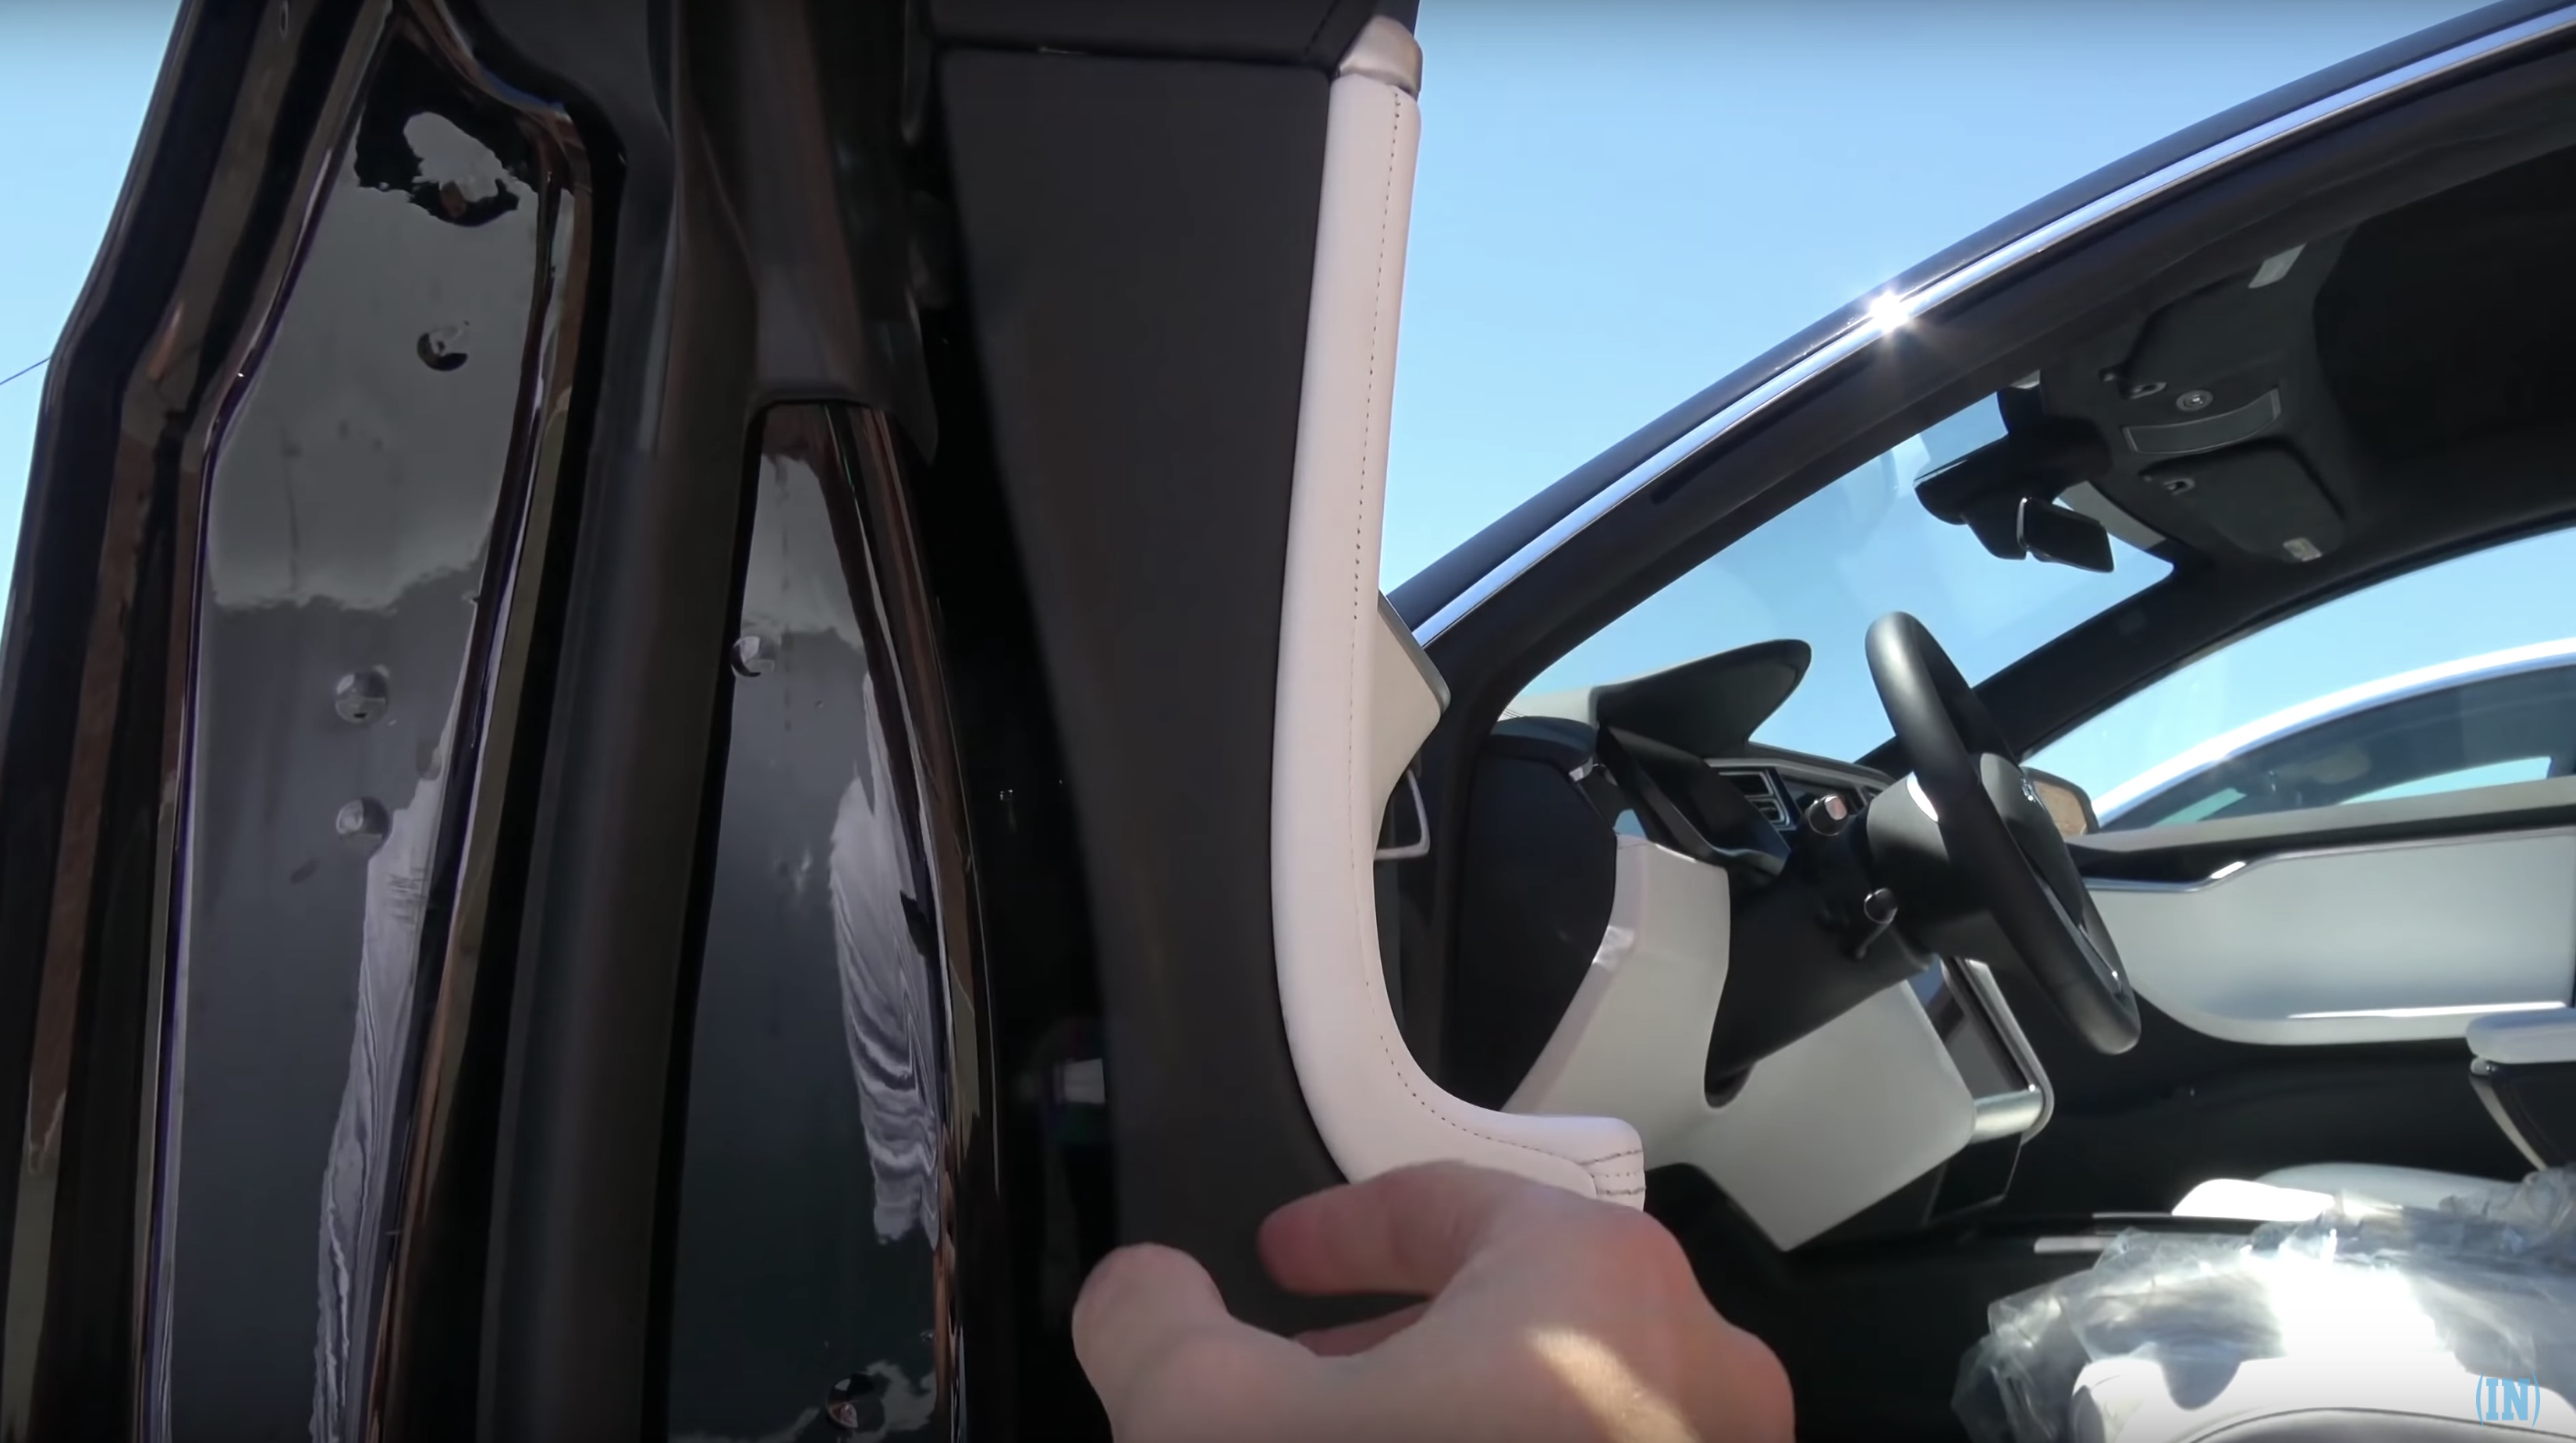 Tesla Solar Panel Roof >> Inside a Tesla Model S P100D with bulletproof windows and ...